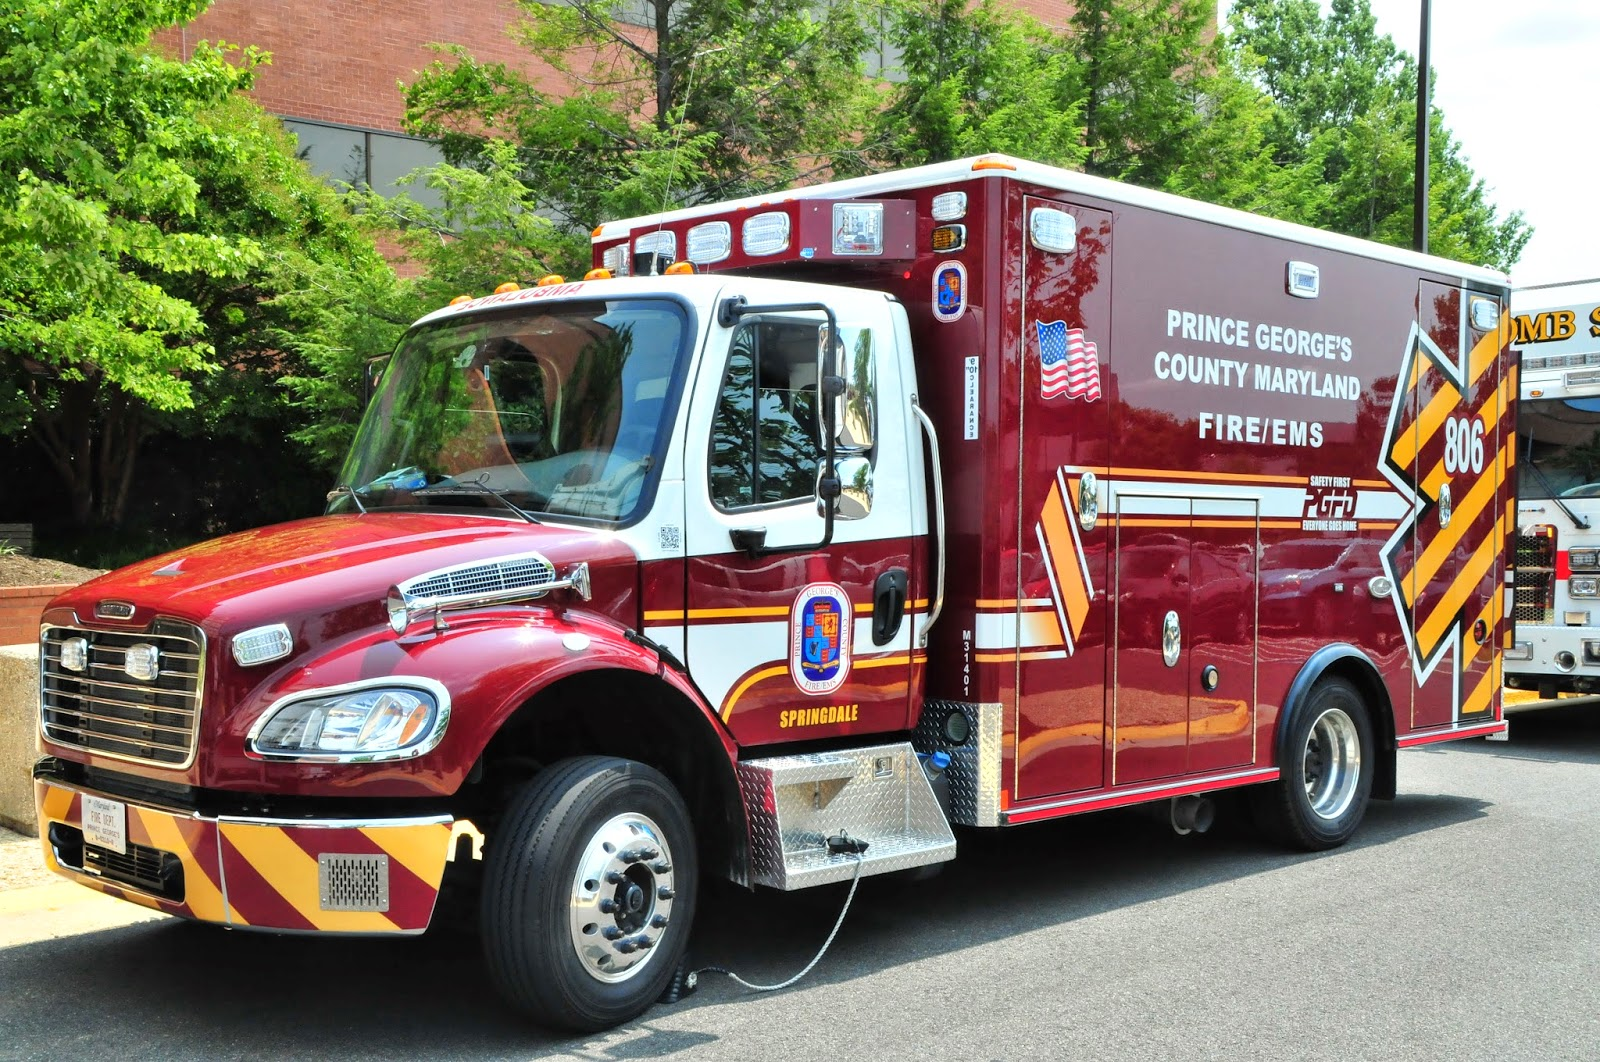 Prince George's County Fire/EMS Department: Jul 30, 2014